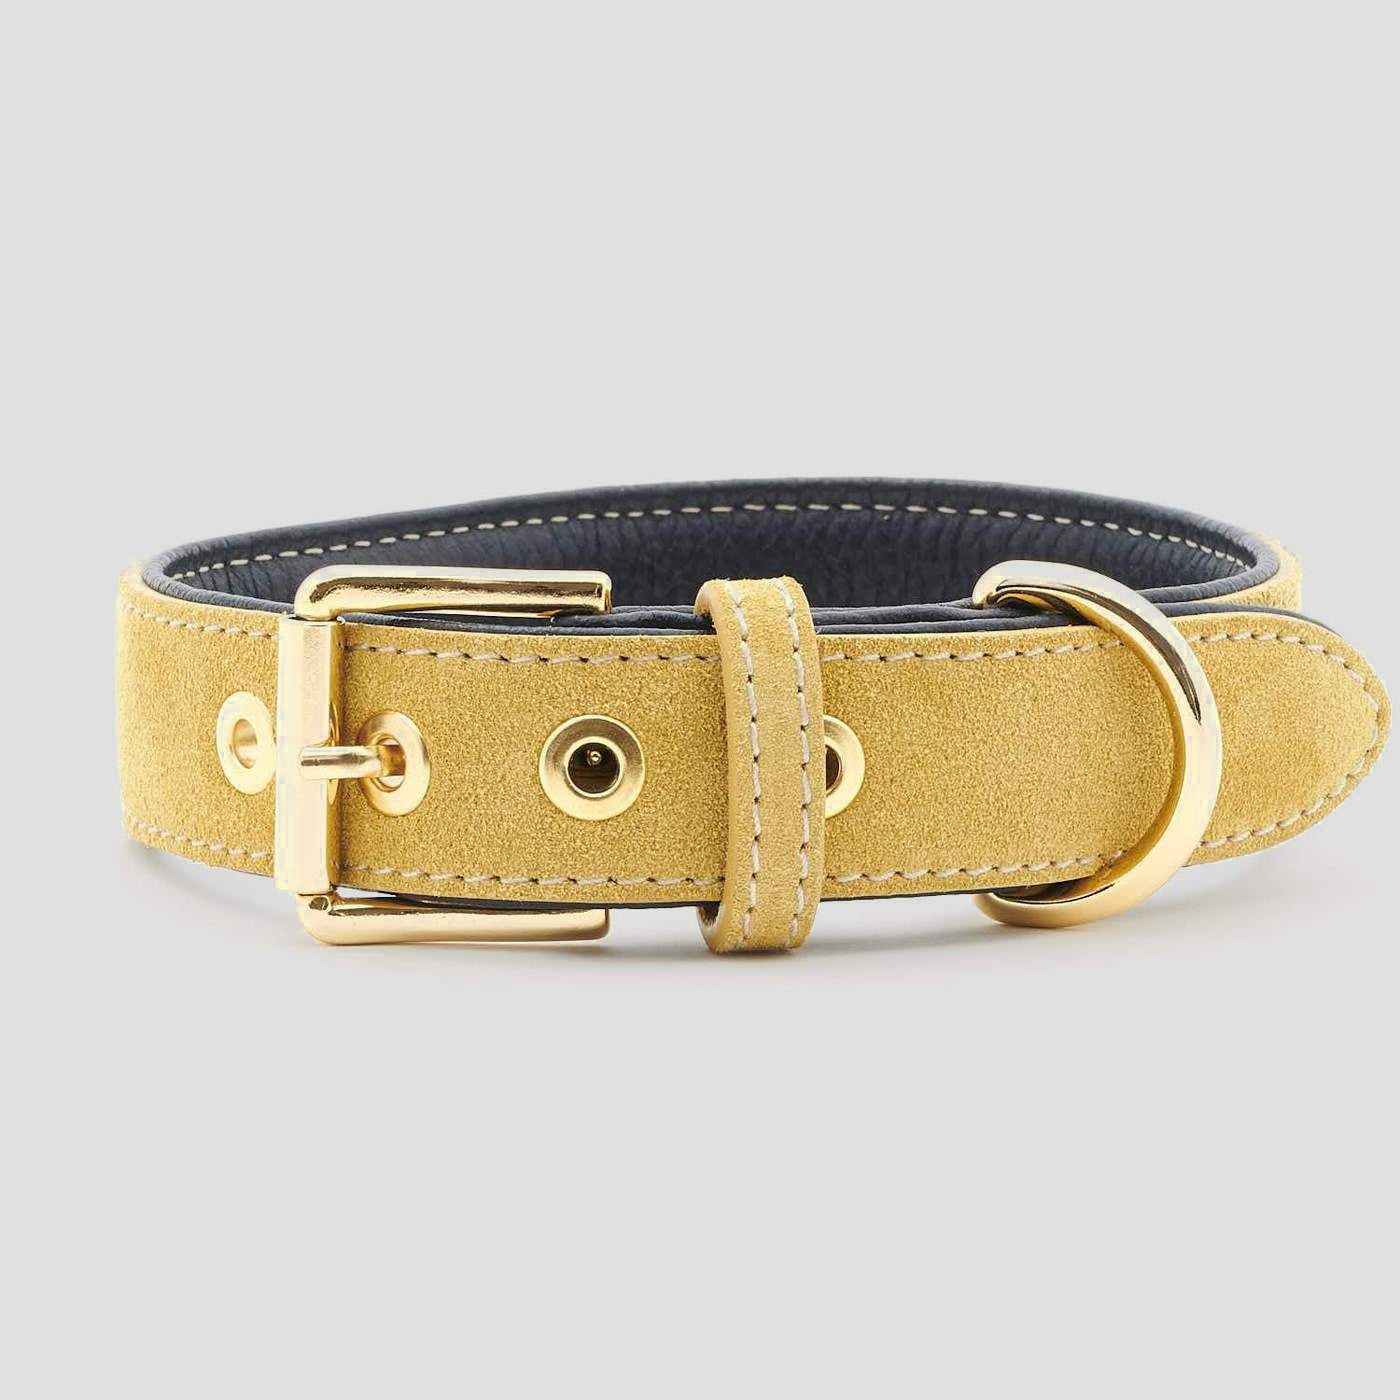 William Walker Leather Dog Collar - Midnight X Sun